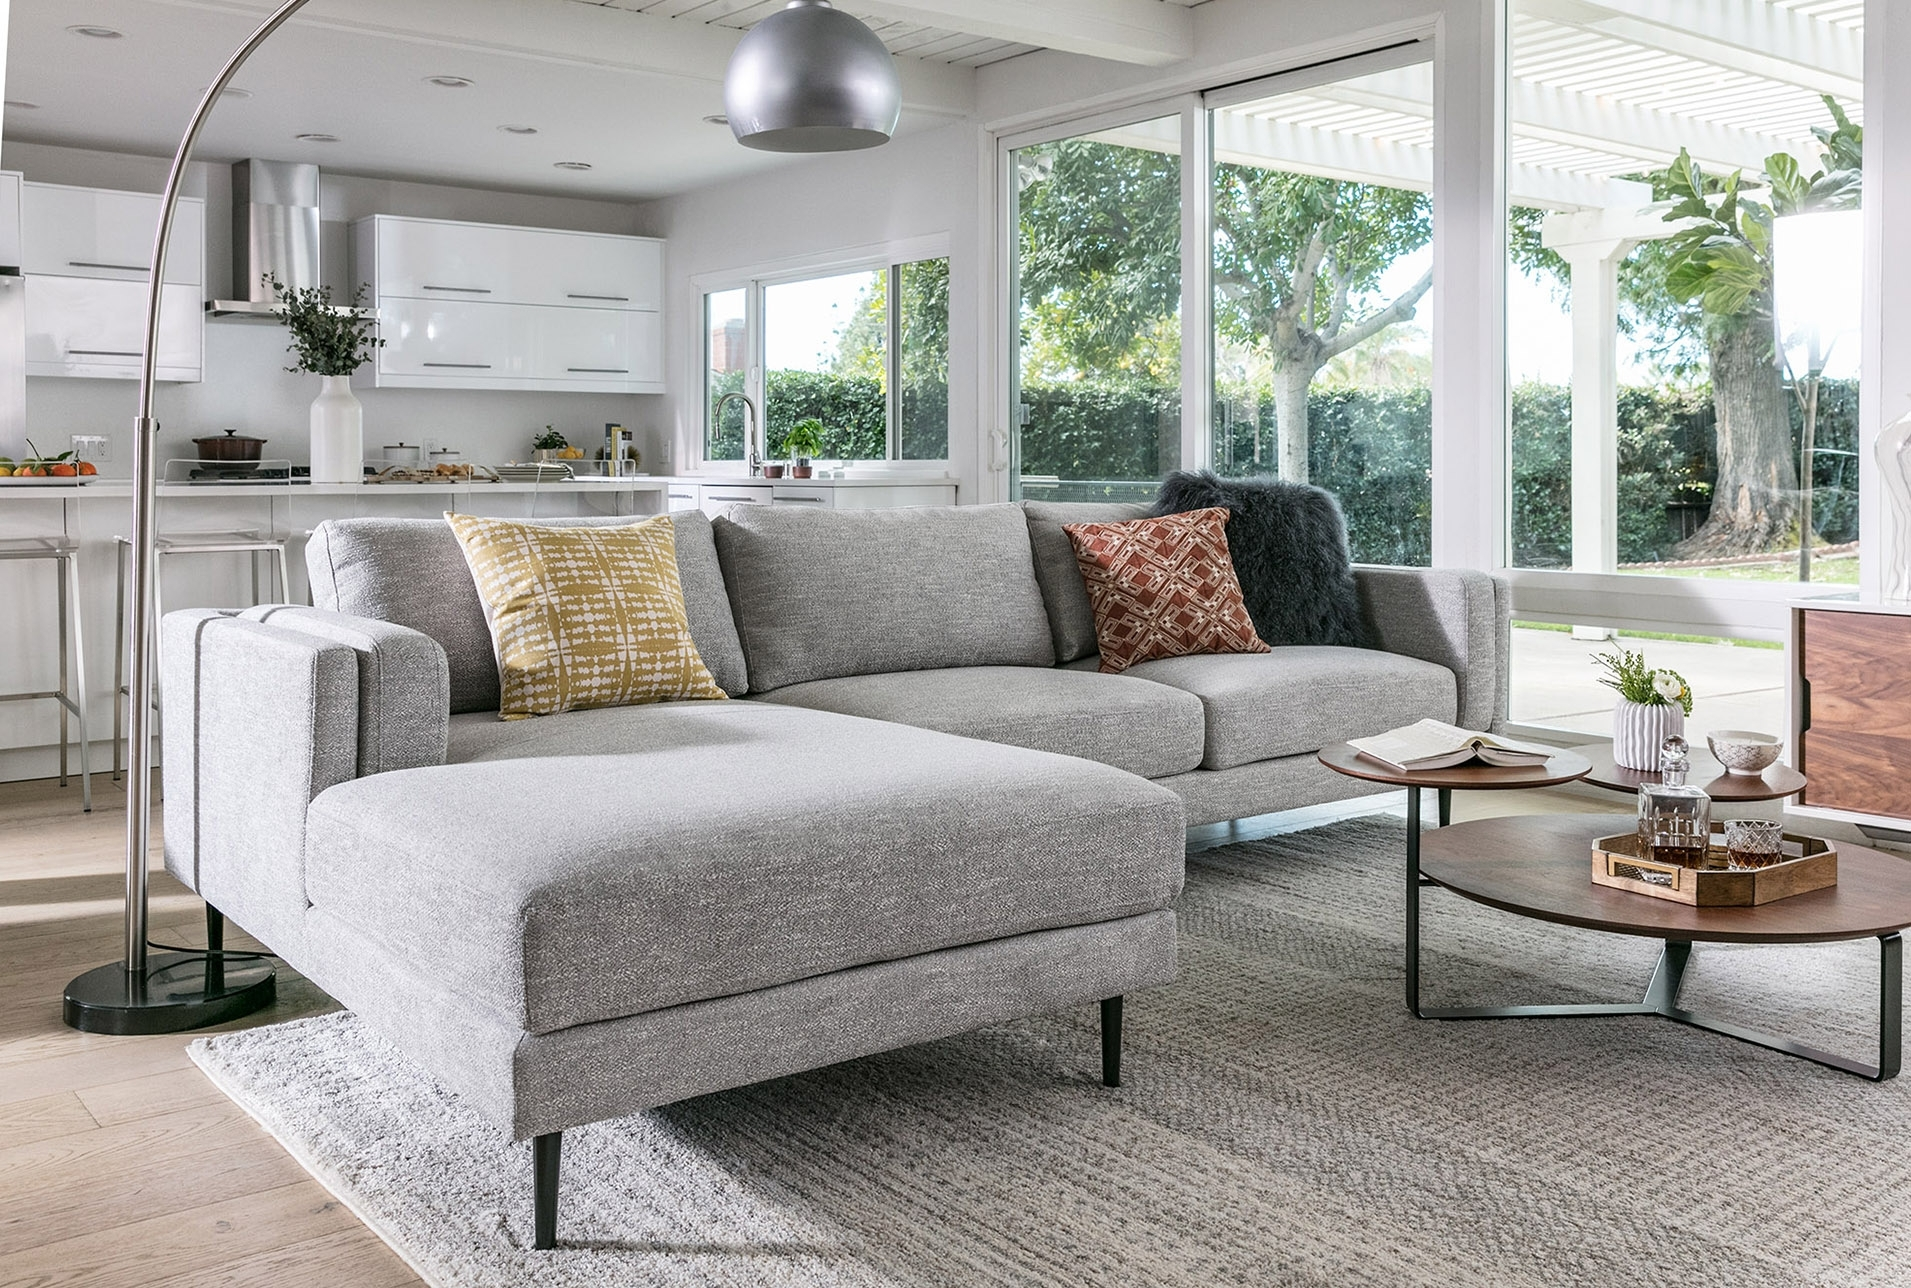 Aquarius Light Grey 2 Piece Sectional W/laf Chaise | Products In Aquarius Light Grey 2 Piece Sectionals With Laf Chaise (View 5 of 25)